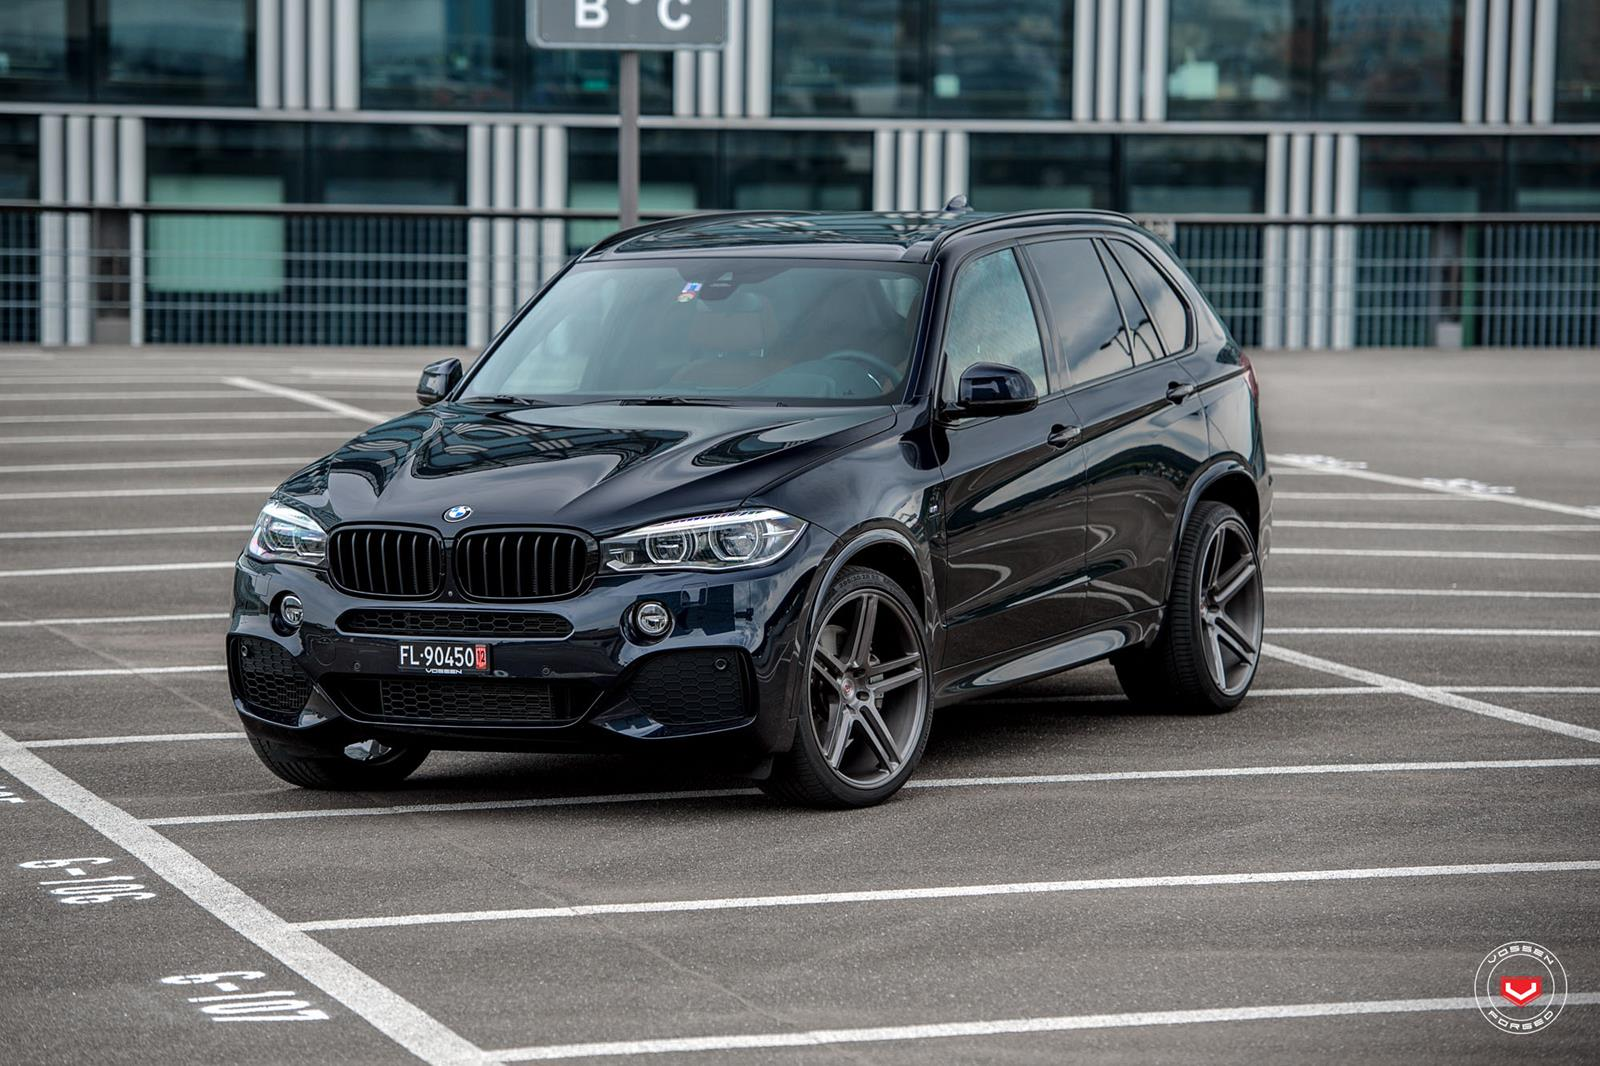 These Custom 22 Wheels Work On Black BMW X5